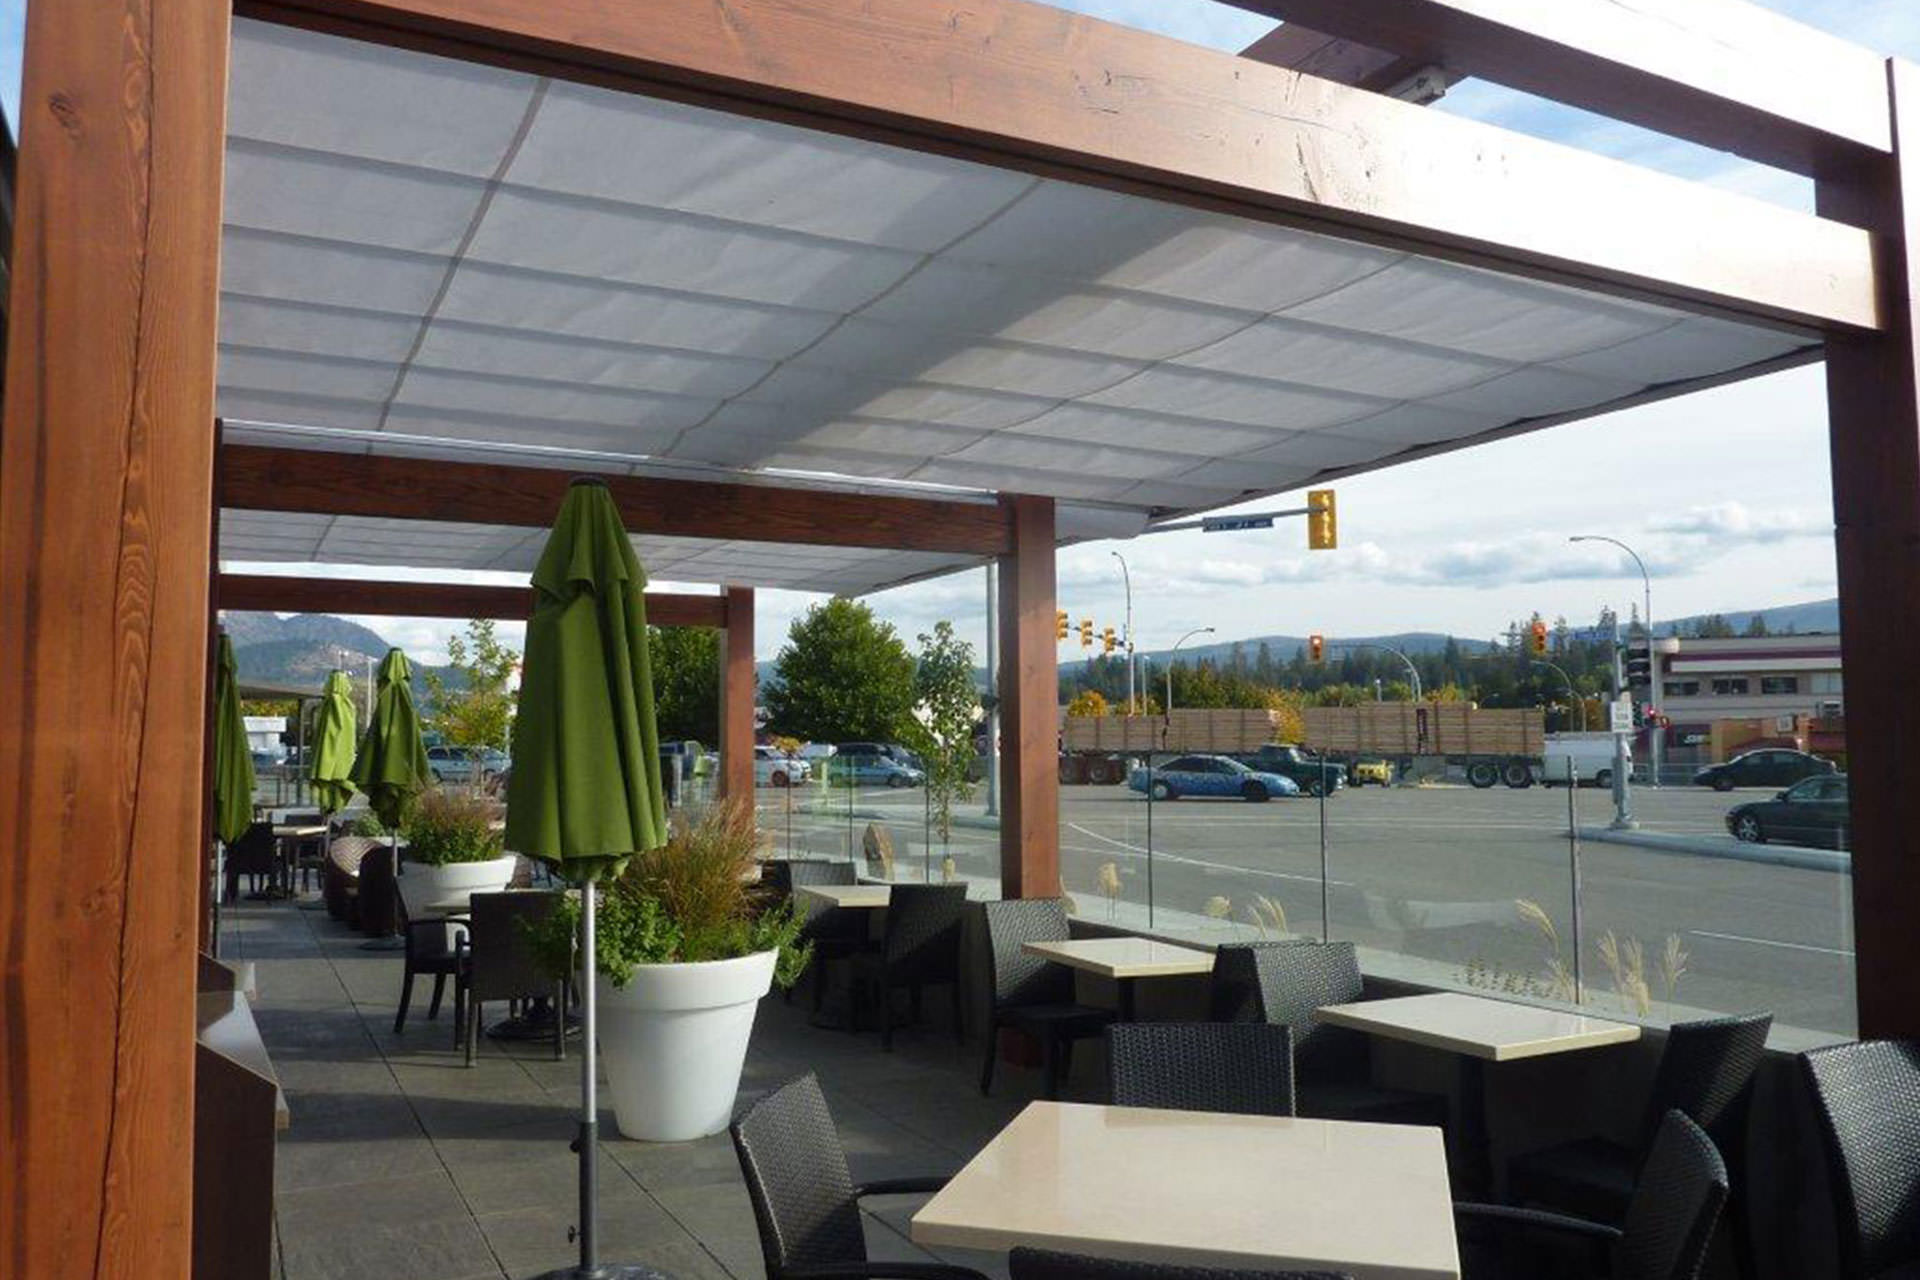 Cantilevered Retractable Canopies Ora Restaurant